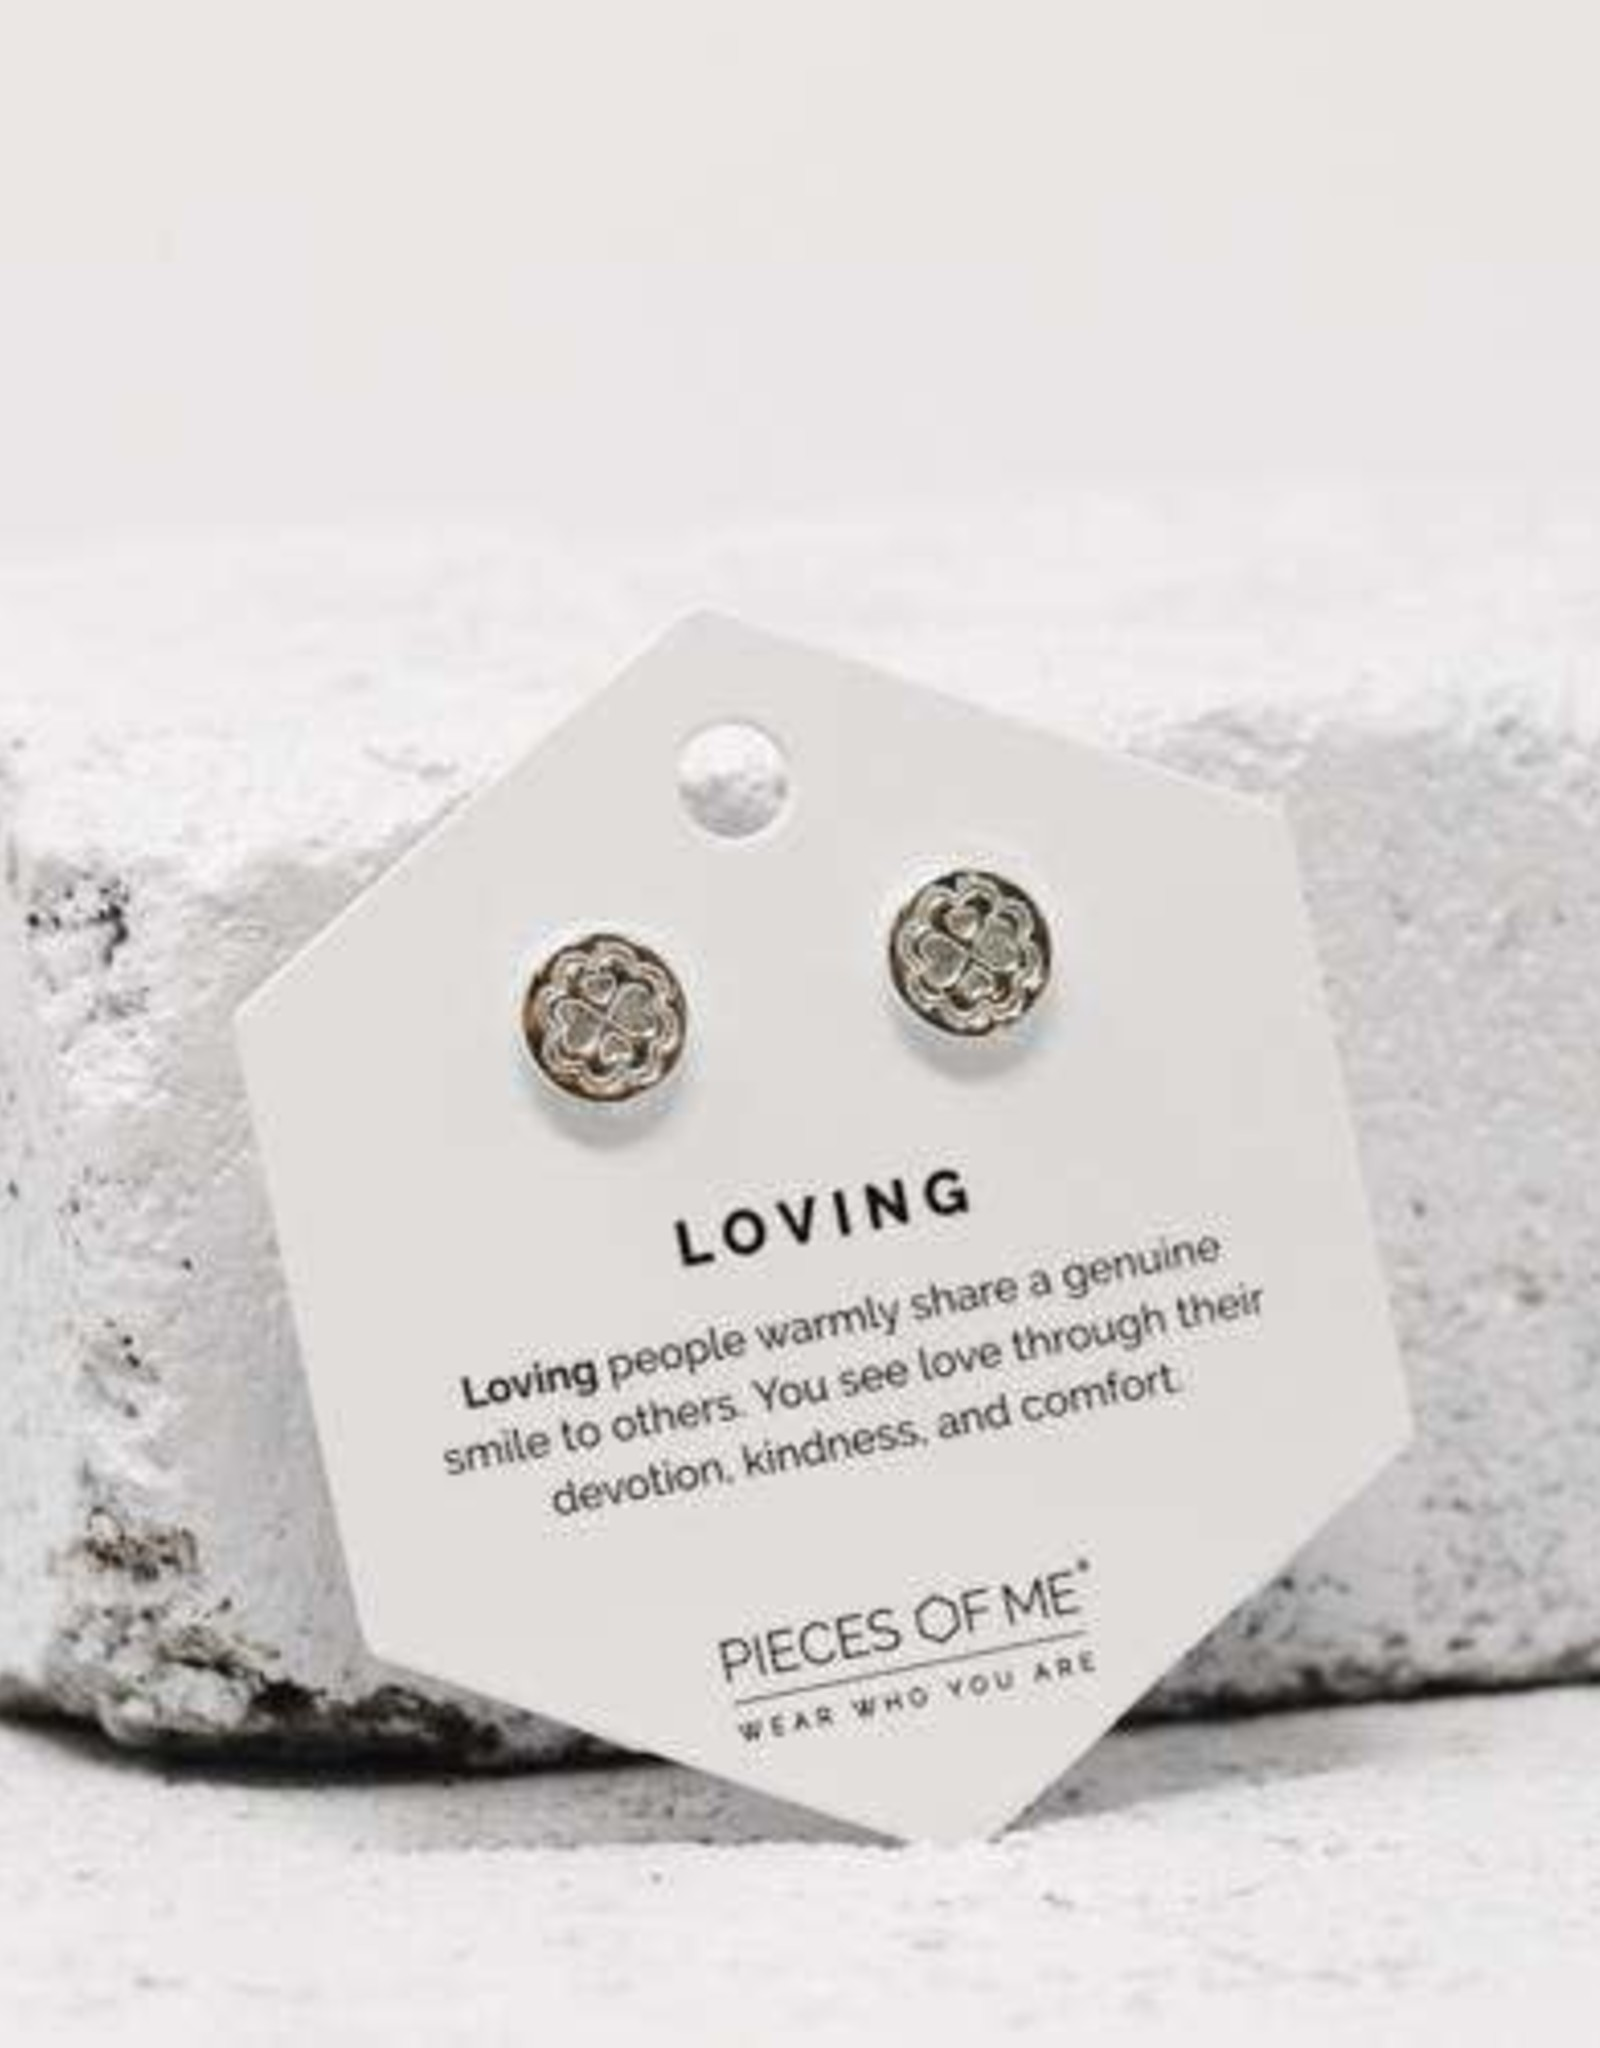 Pieces of Me Earrings - Silver Loving